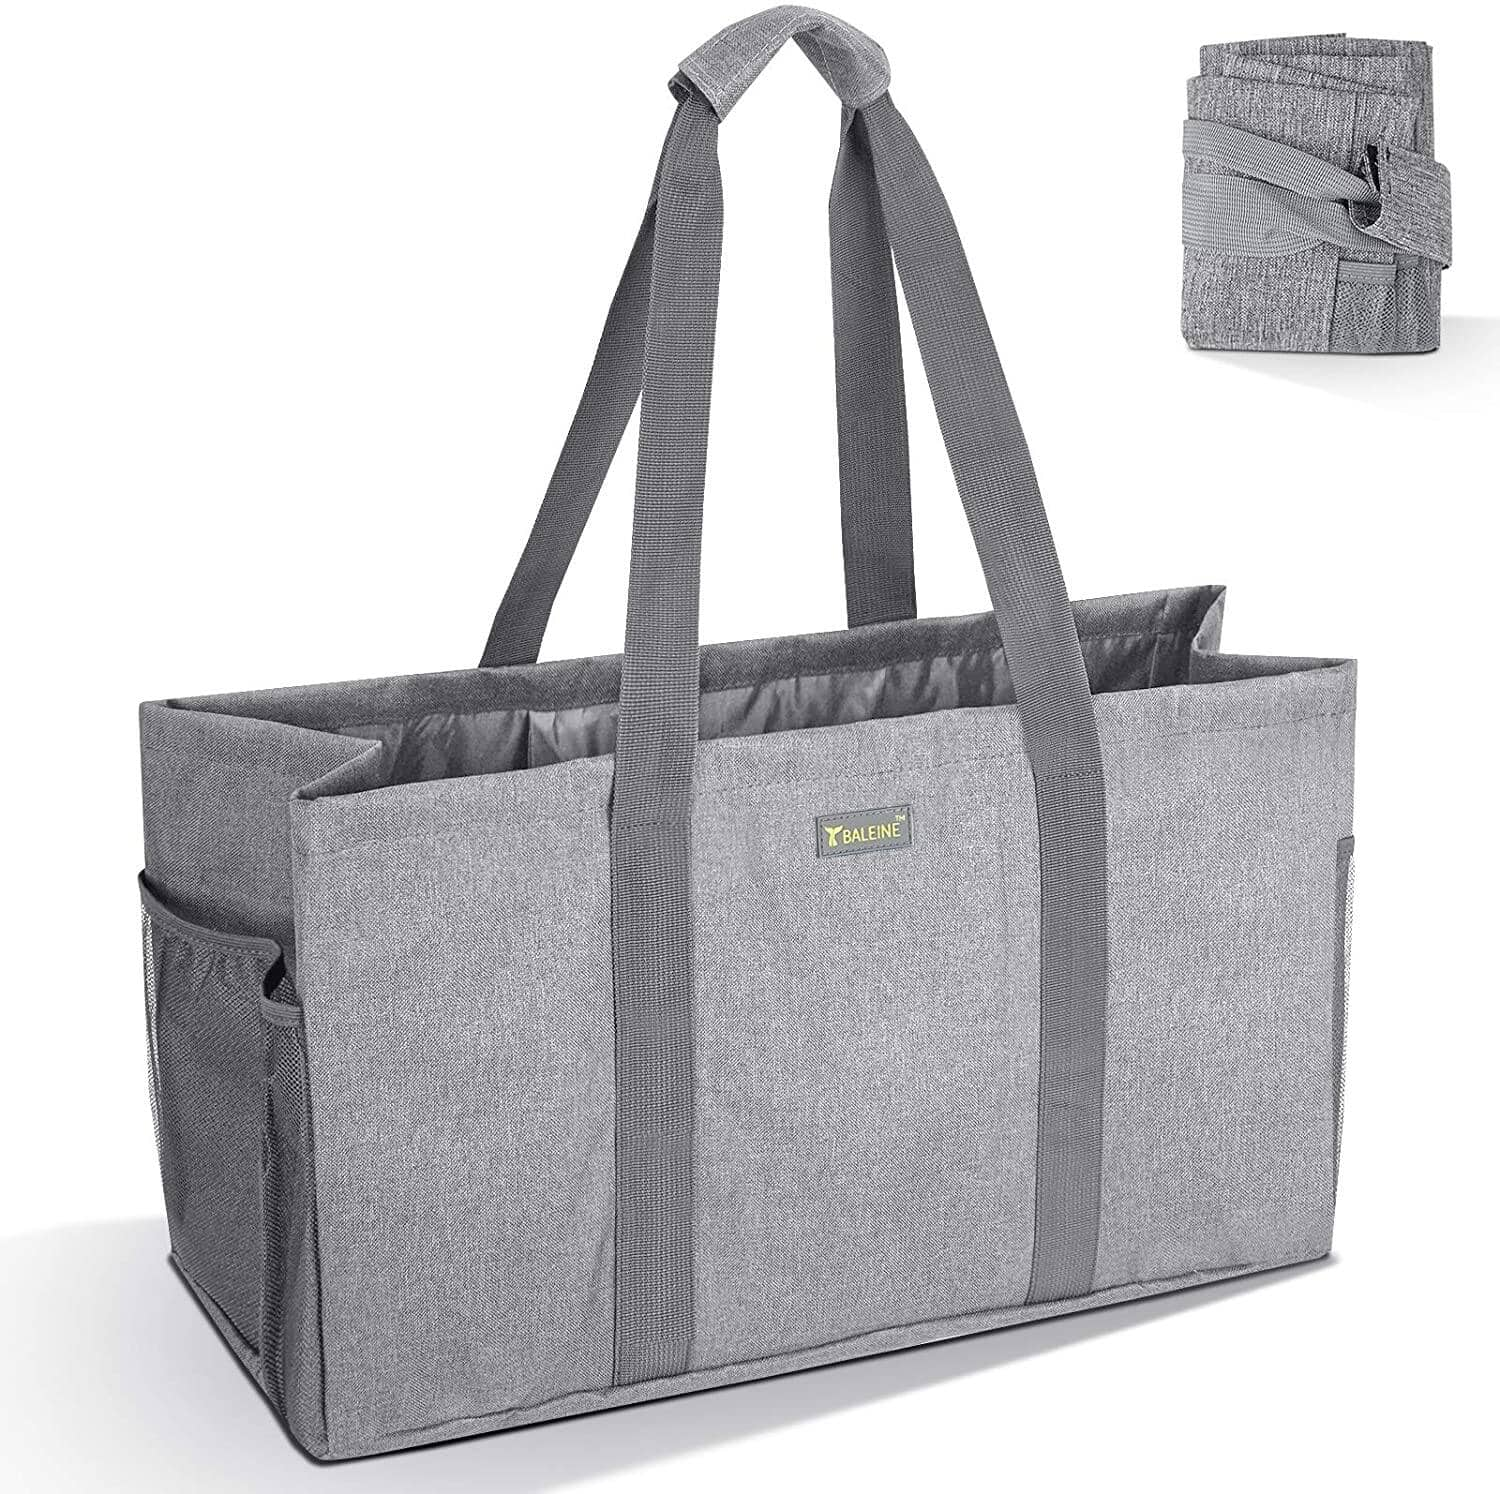 Soft Large Utility Tote Bag (1&2 pack, 4 colors)$12.34 - $19.49 + Free Shipping w/ Prime or Orders $25+